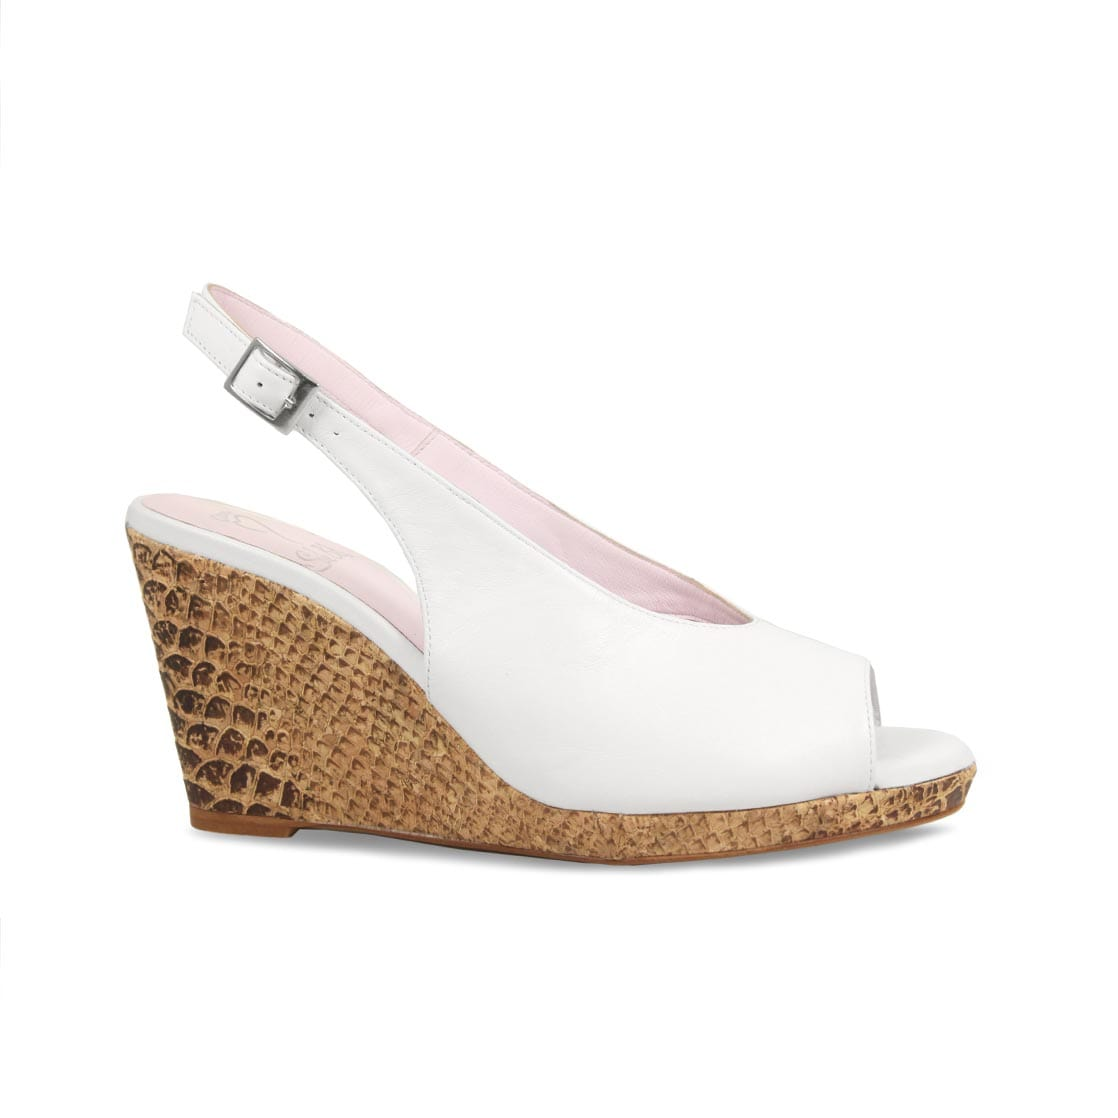 White Leather Peep-Toe Wedge Sandals